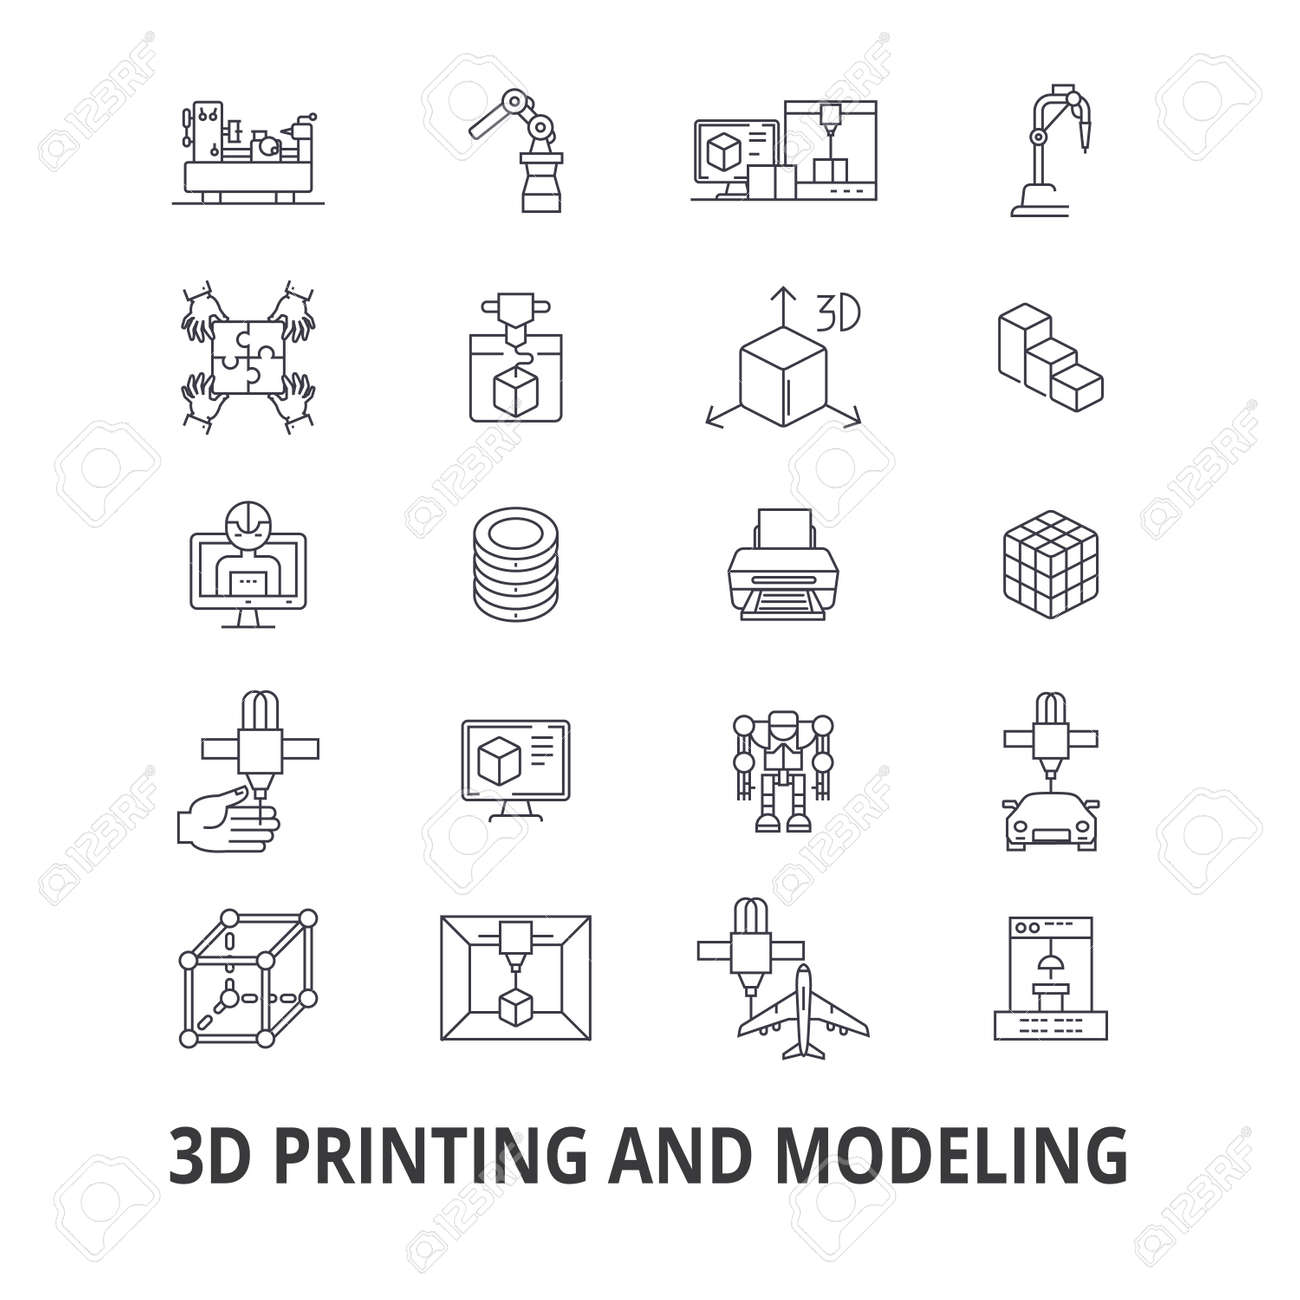 3d printing, model, graphics, prototype, modeling, manufacturing, production line icons. Editable strokes. Flat design vector illustration symbol concept. Linear signs isolated on background - 85713780